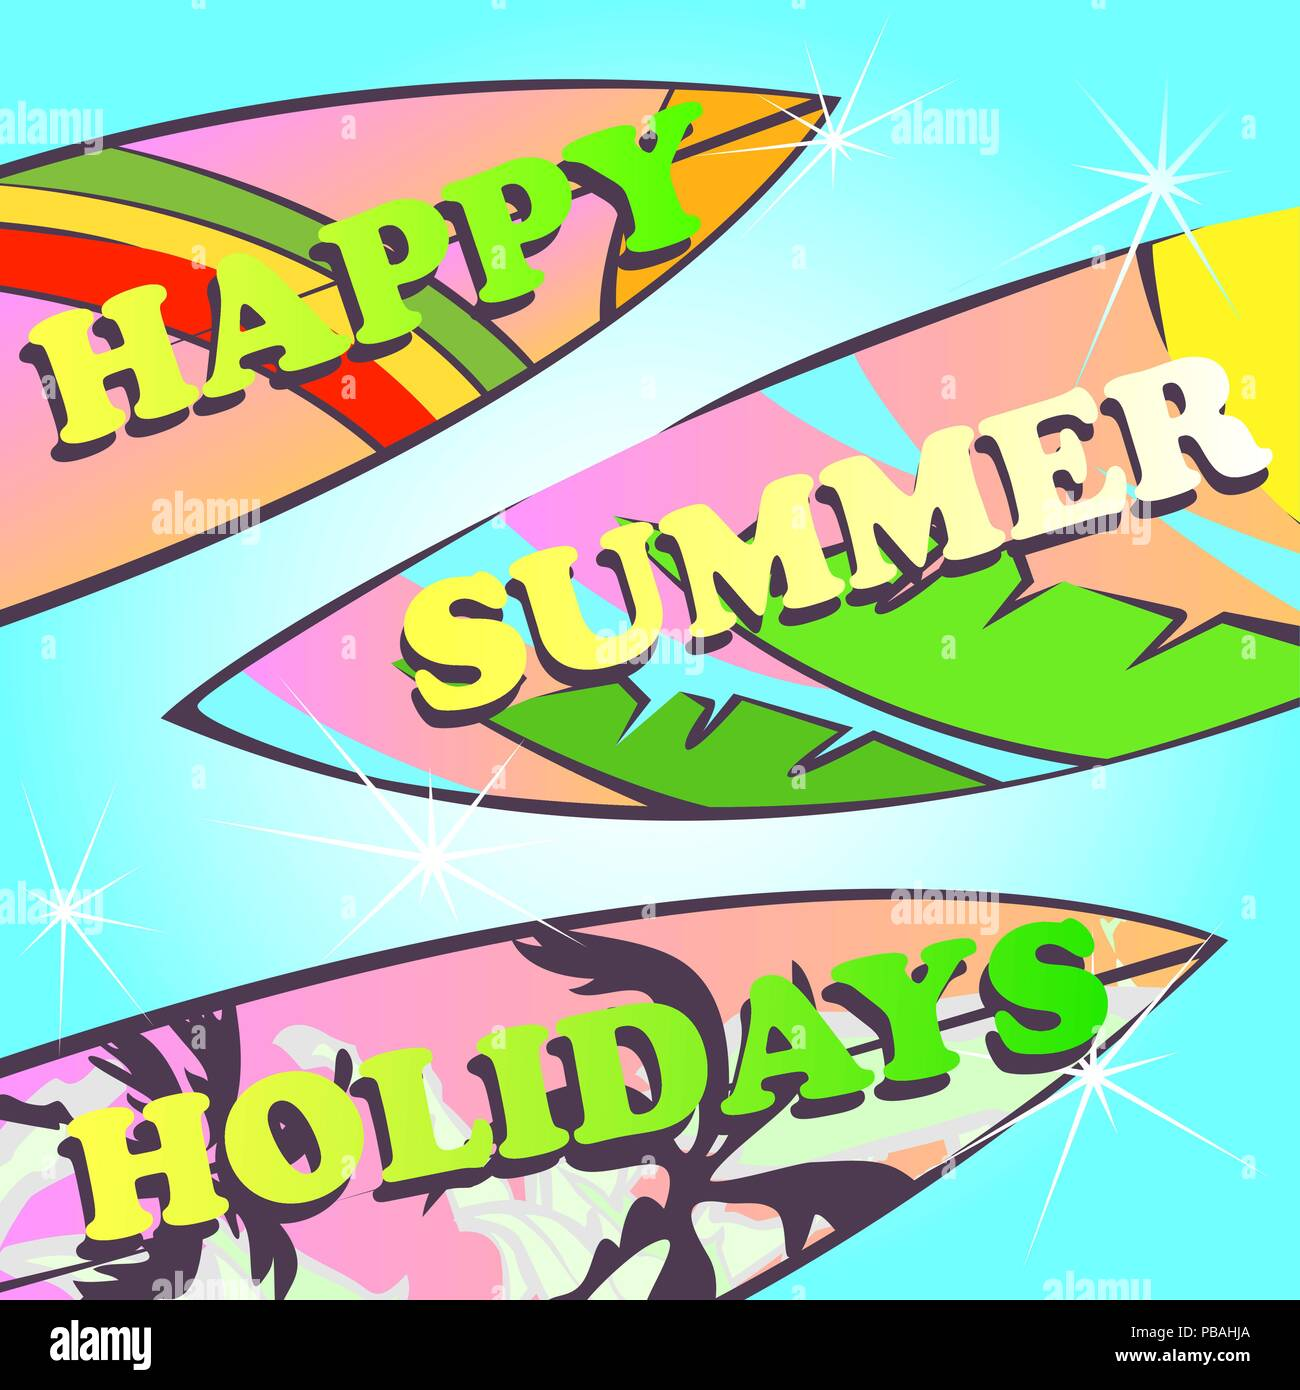 happy summer holidays design retro stylized surfing boards with rainbow pink and yellow sunset palms palm leaves on turquoise light gradient water